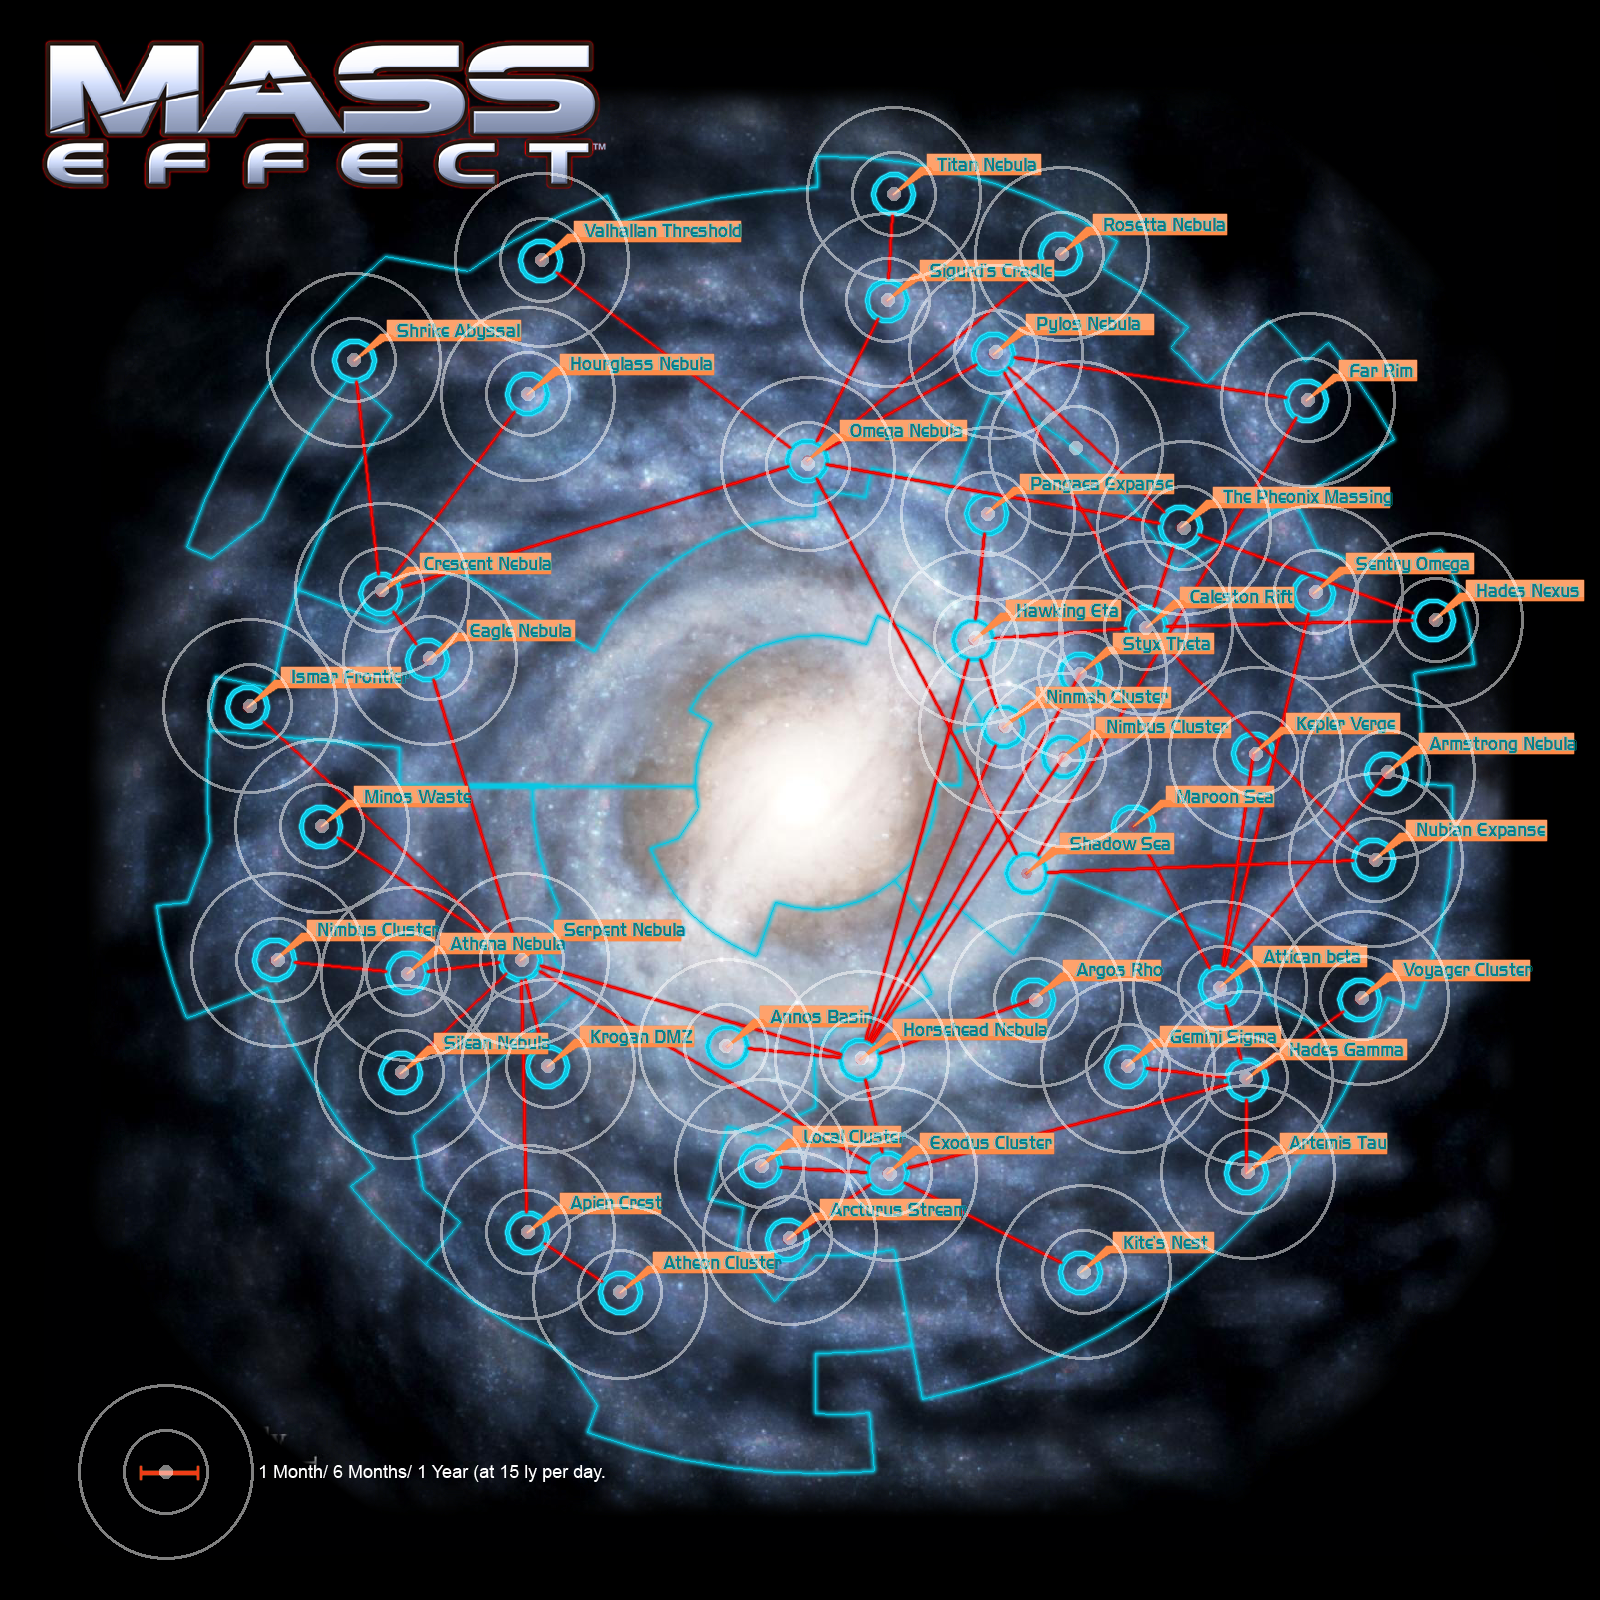 Mass Effect Andromeda Star Map.Some Unexplained And Irrational Stuff In Mass Effect Masseffect